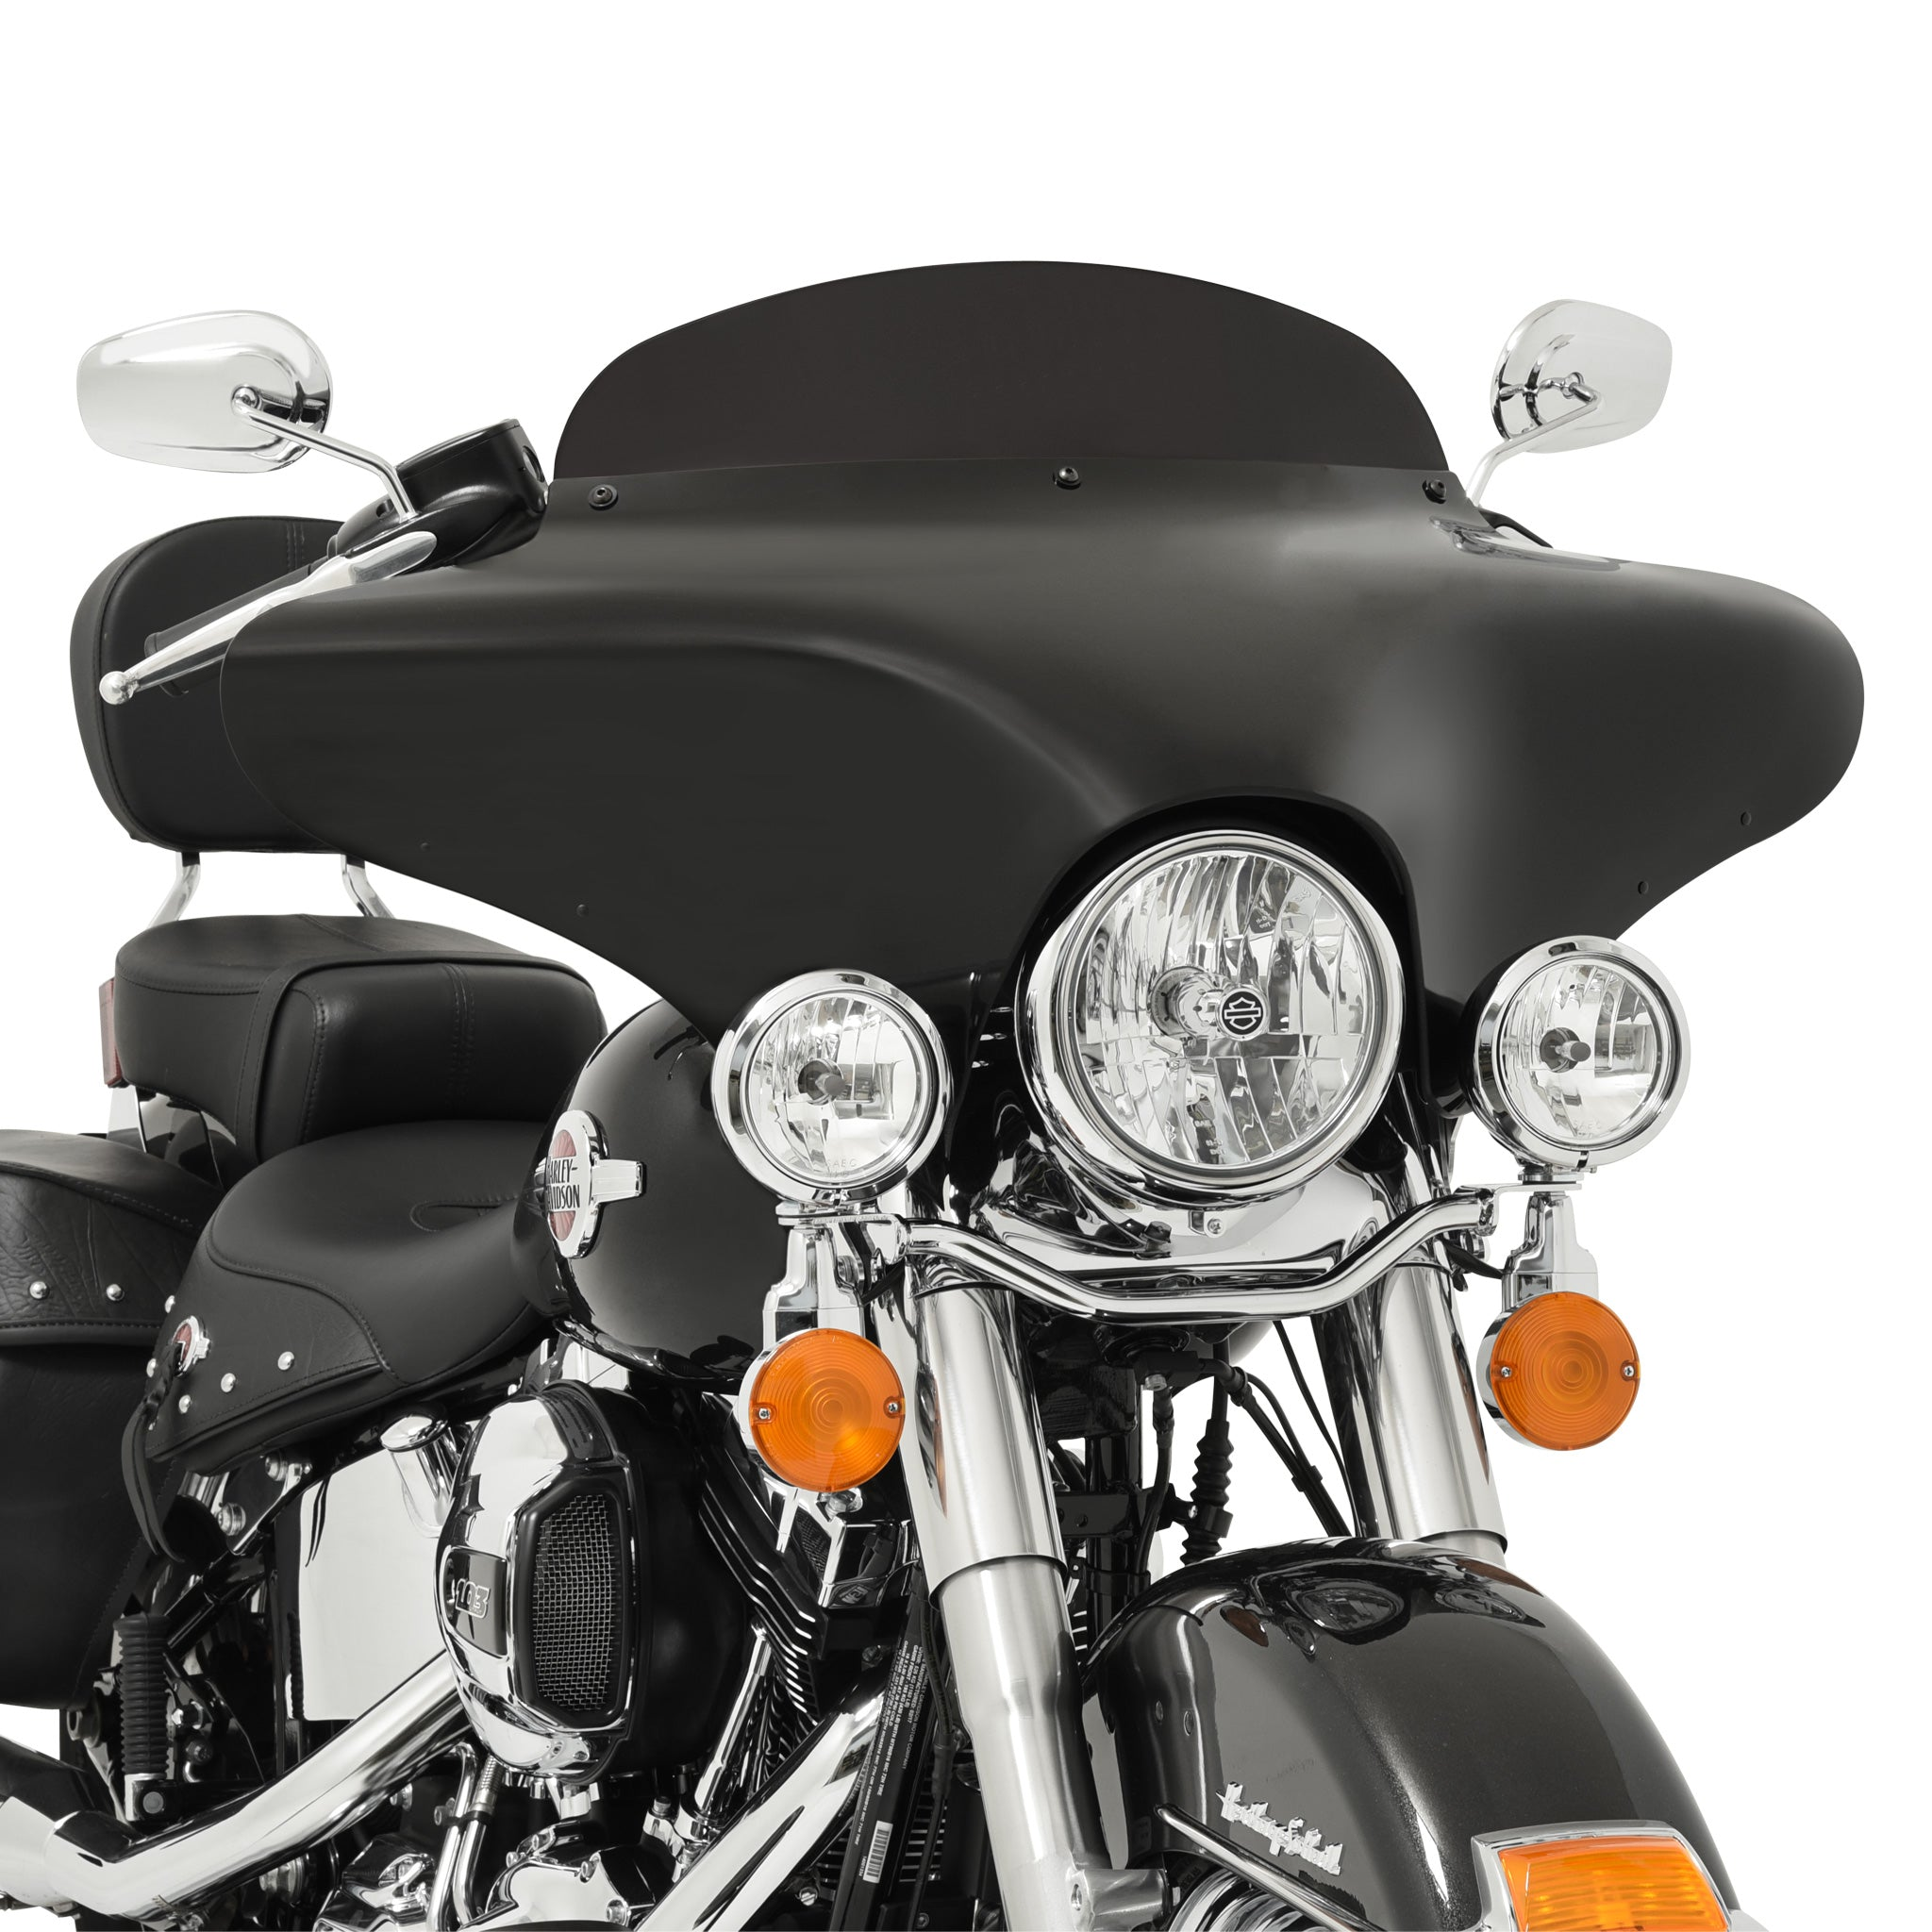 Batwing Fairing for 1986 - 2017 FLSTC Heritage Softail Classic